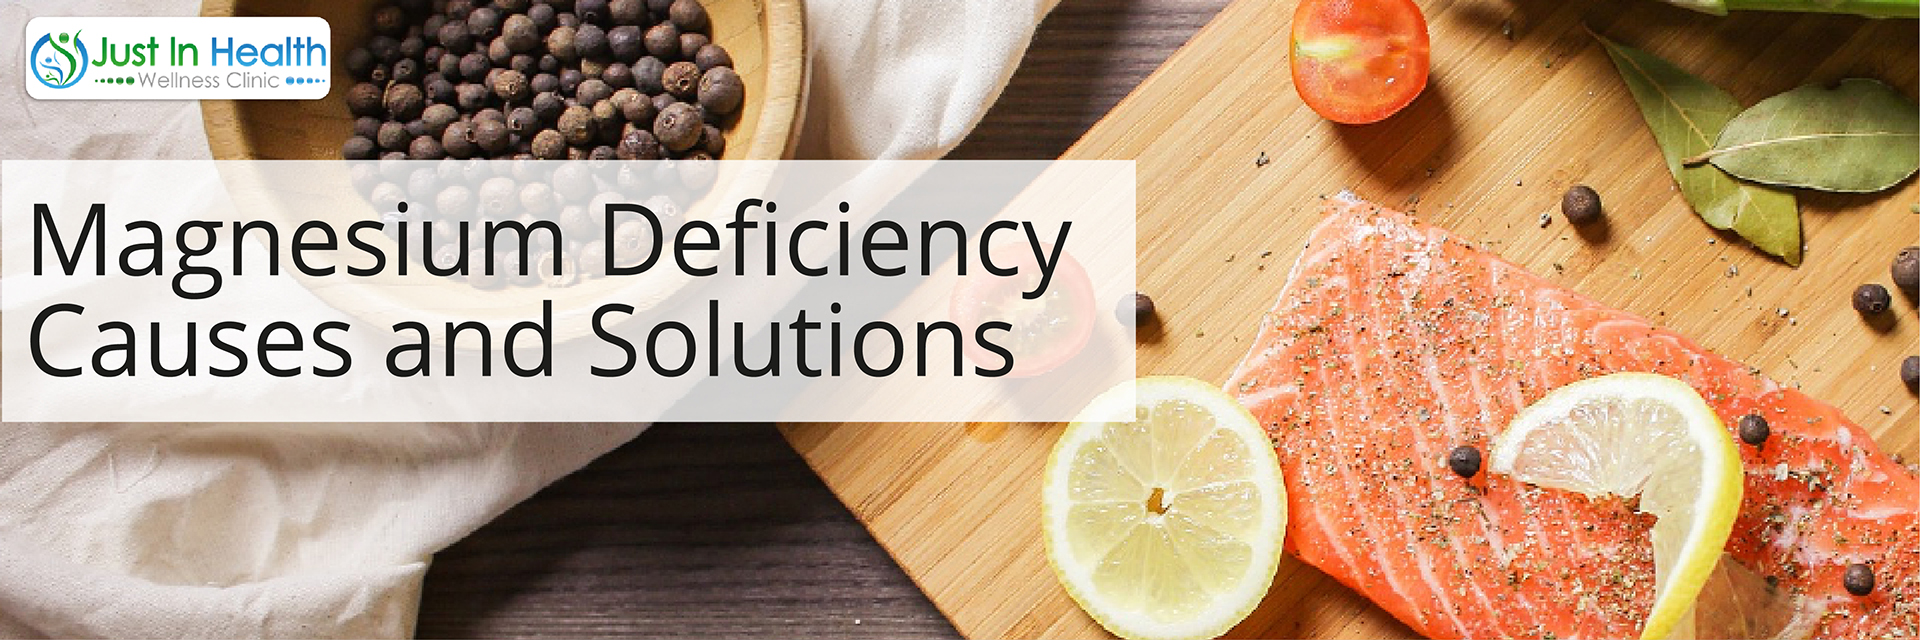 Magnesium Deficiency Causes and Solutions